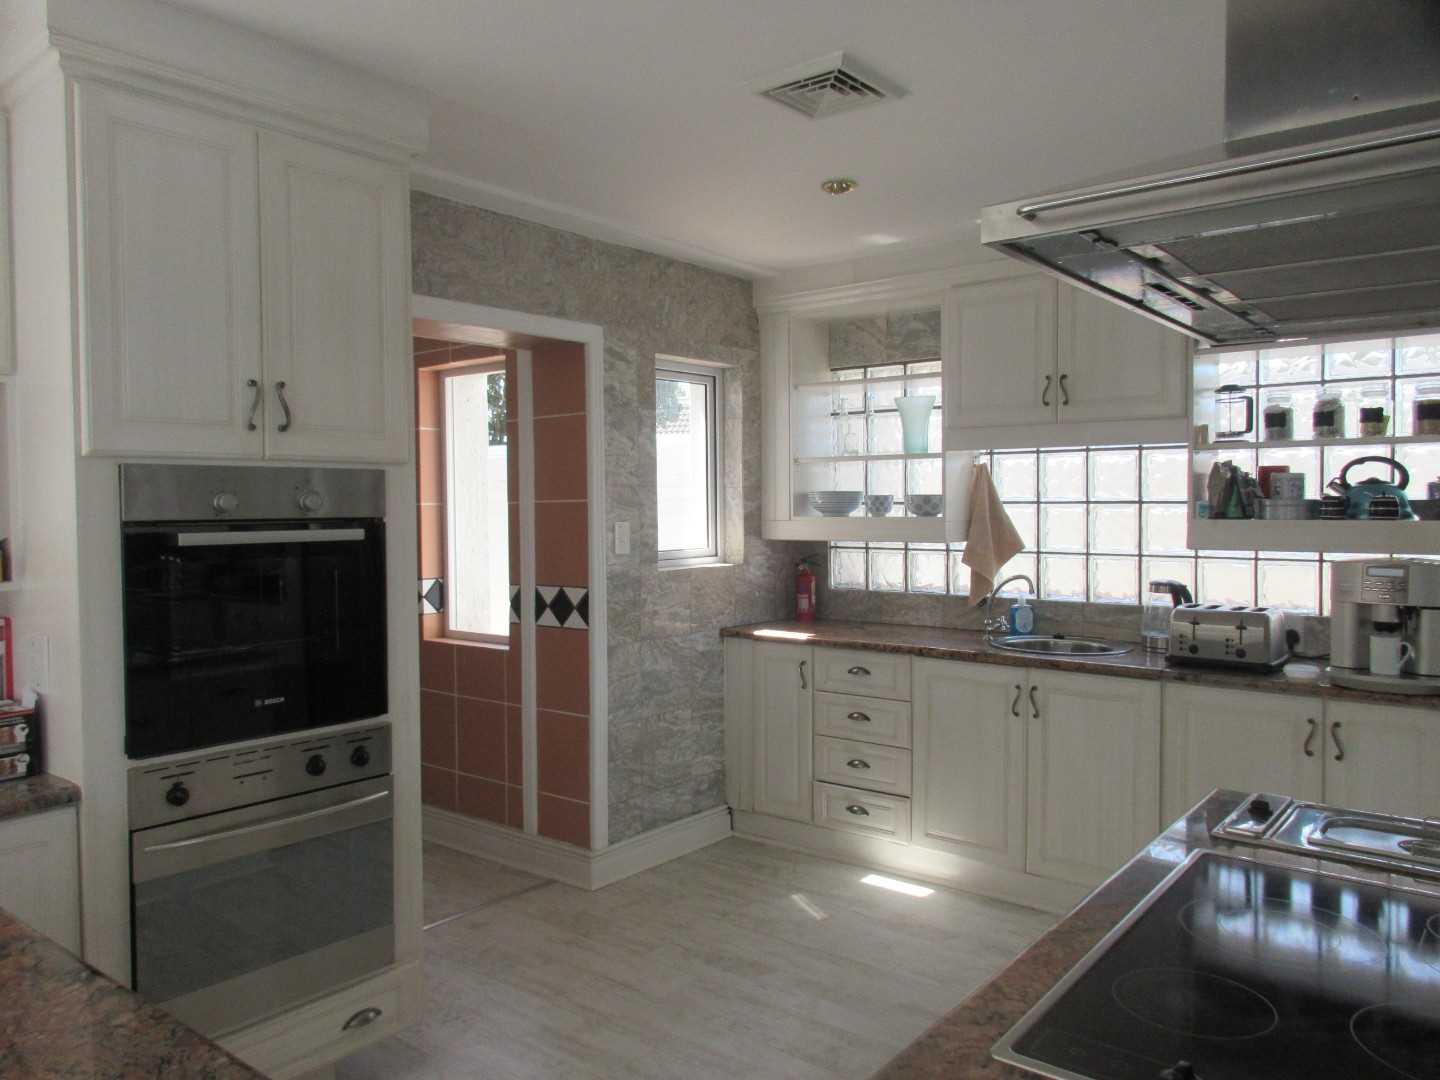 Modern kitchen leading off to a scullery and utility room